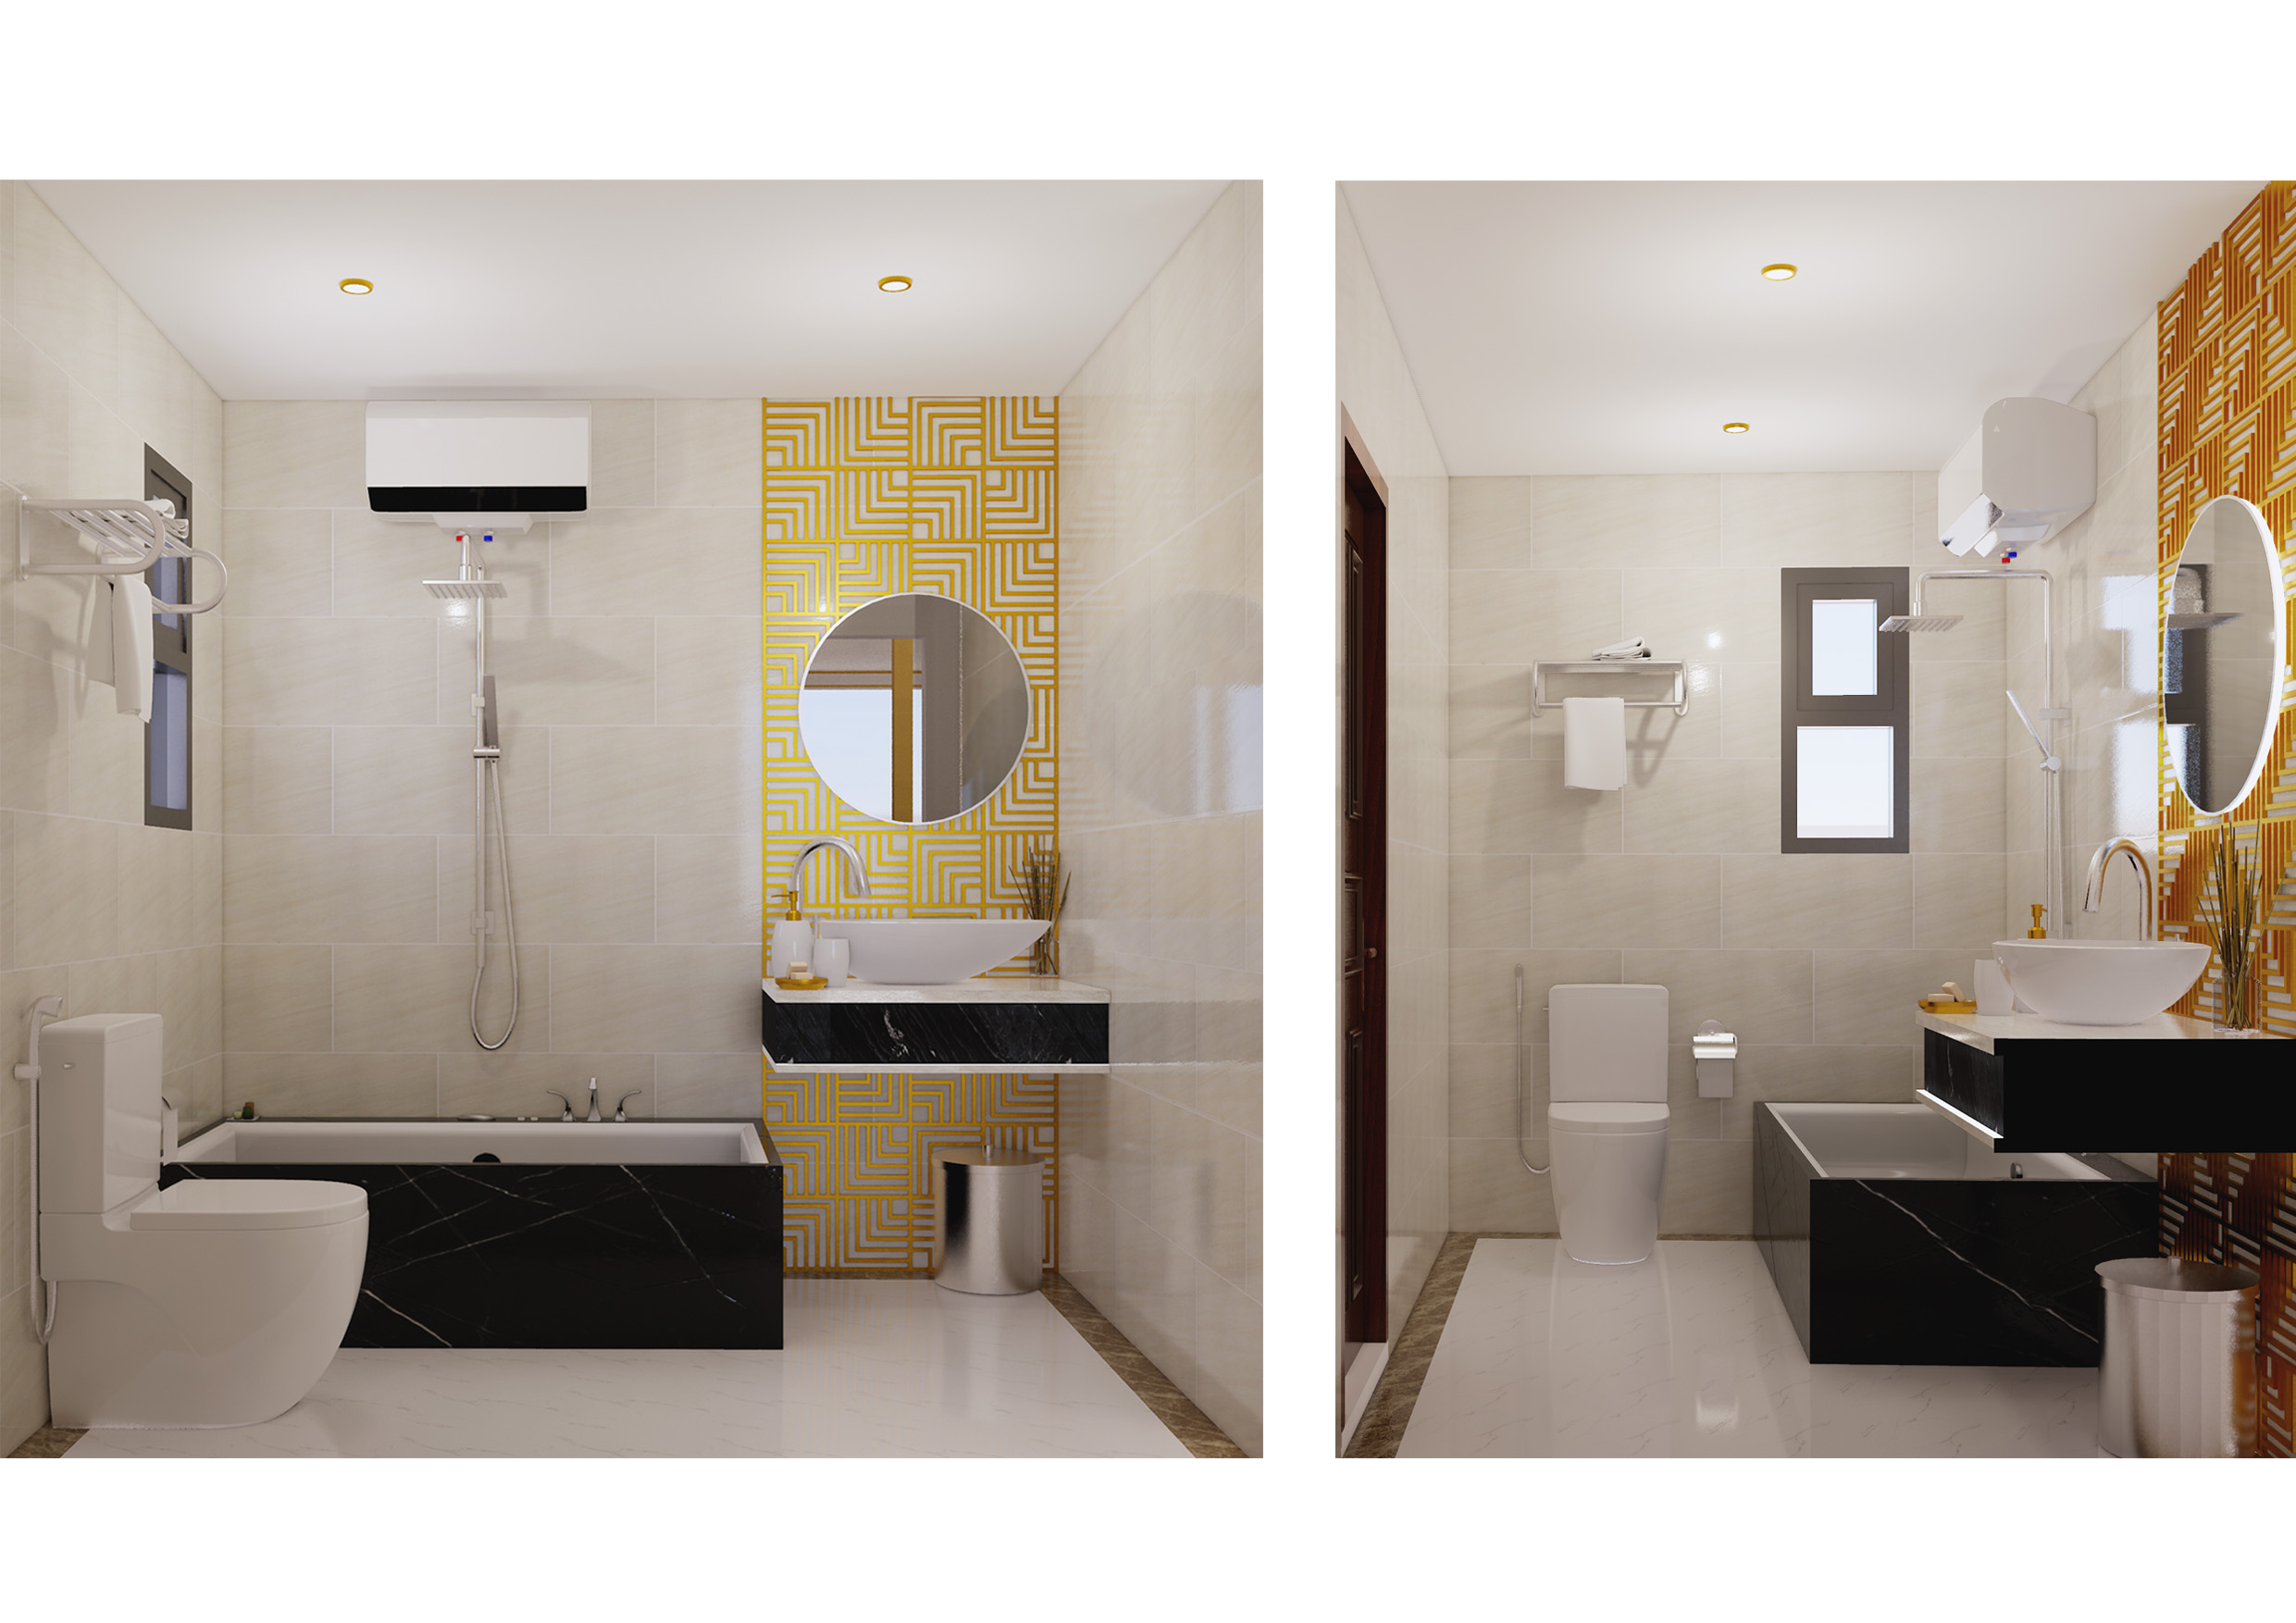 phoi-canh-3d-can-vip-tang-7-wc